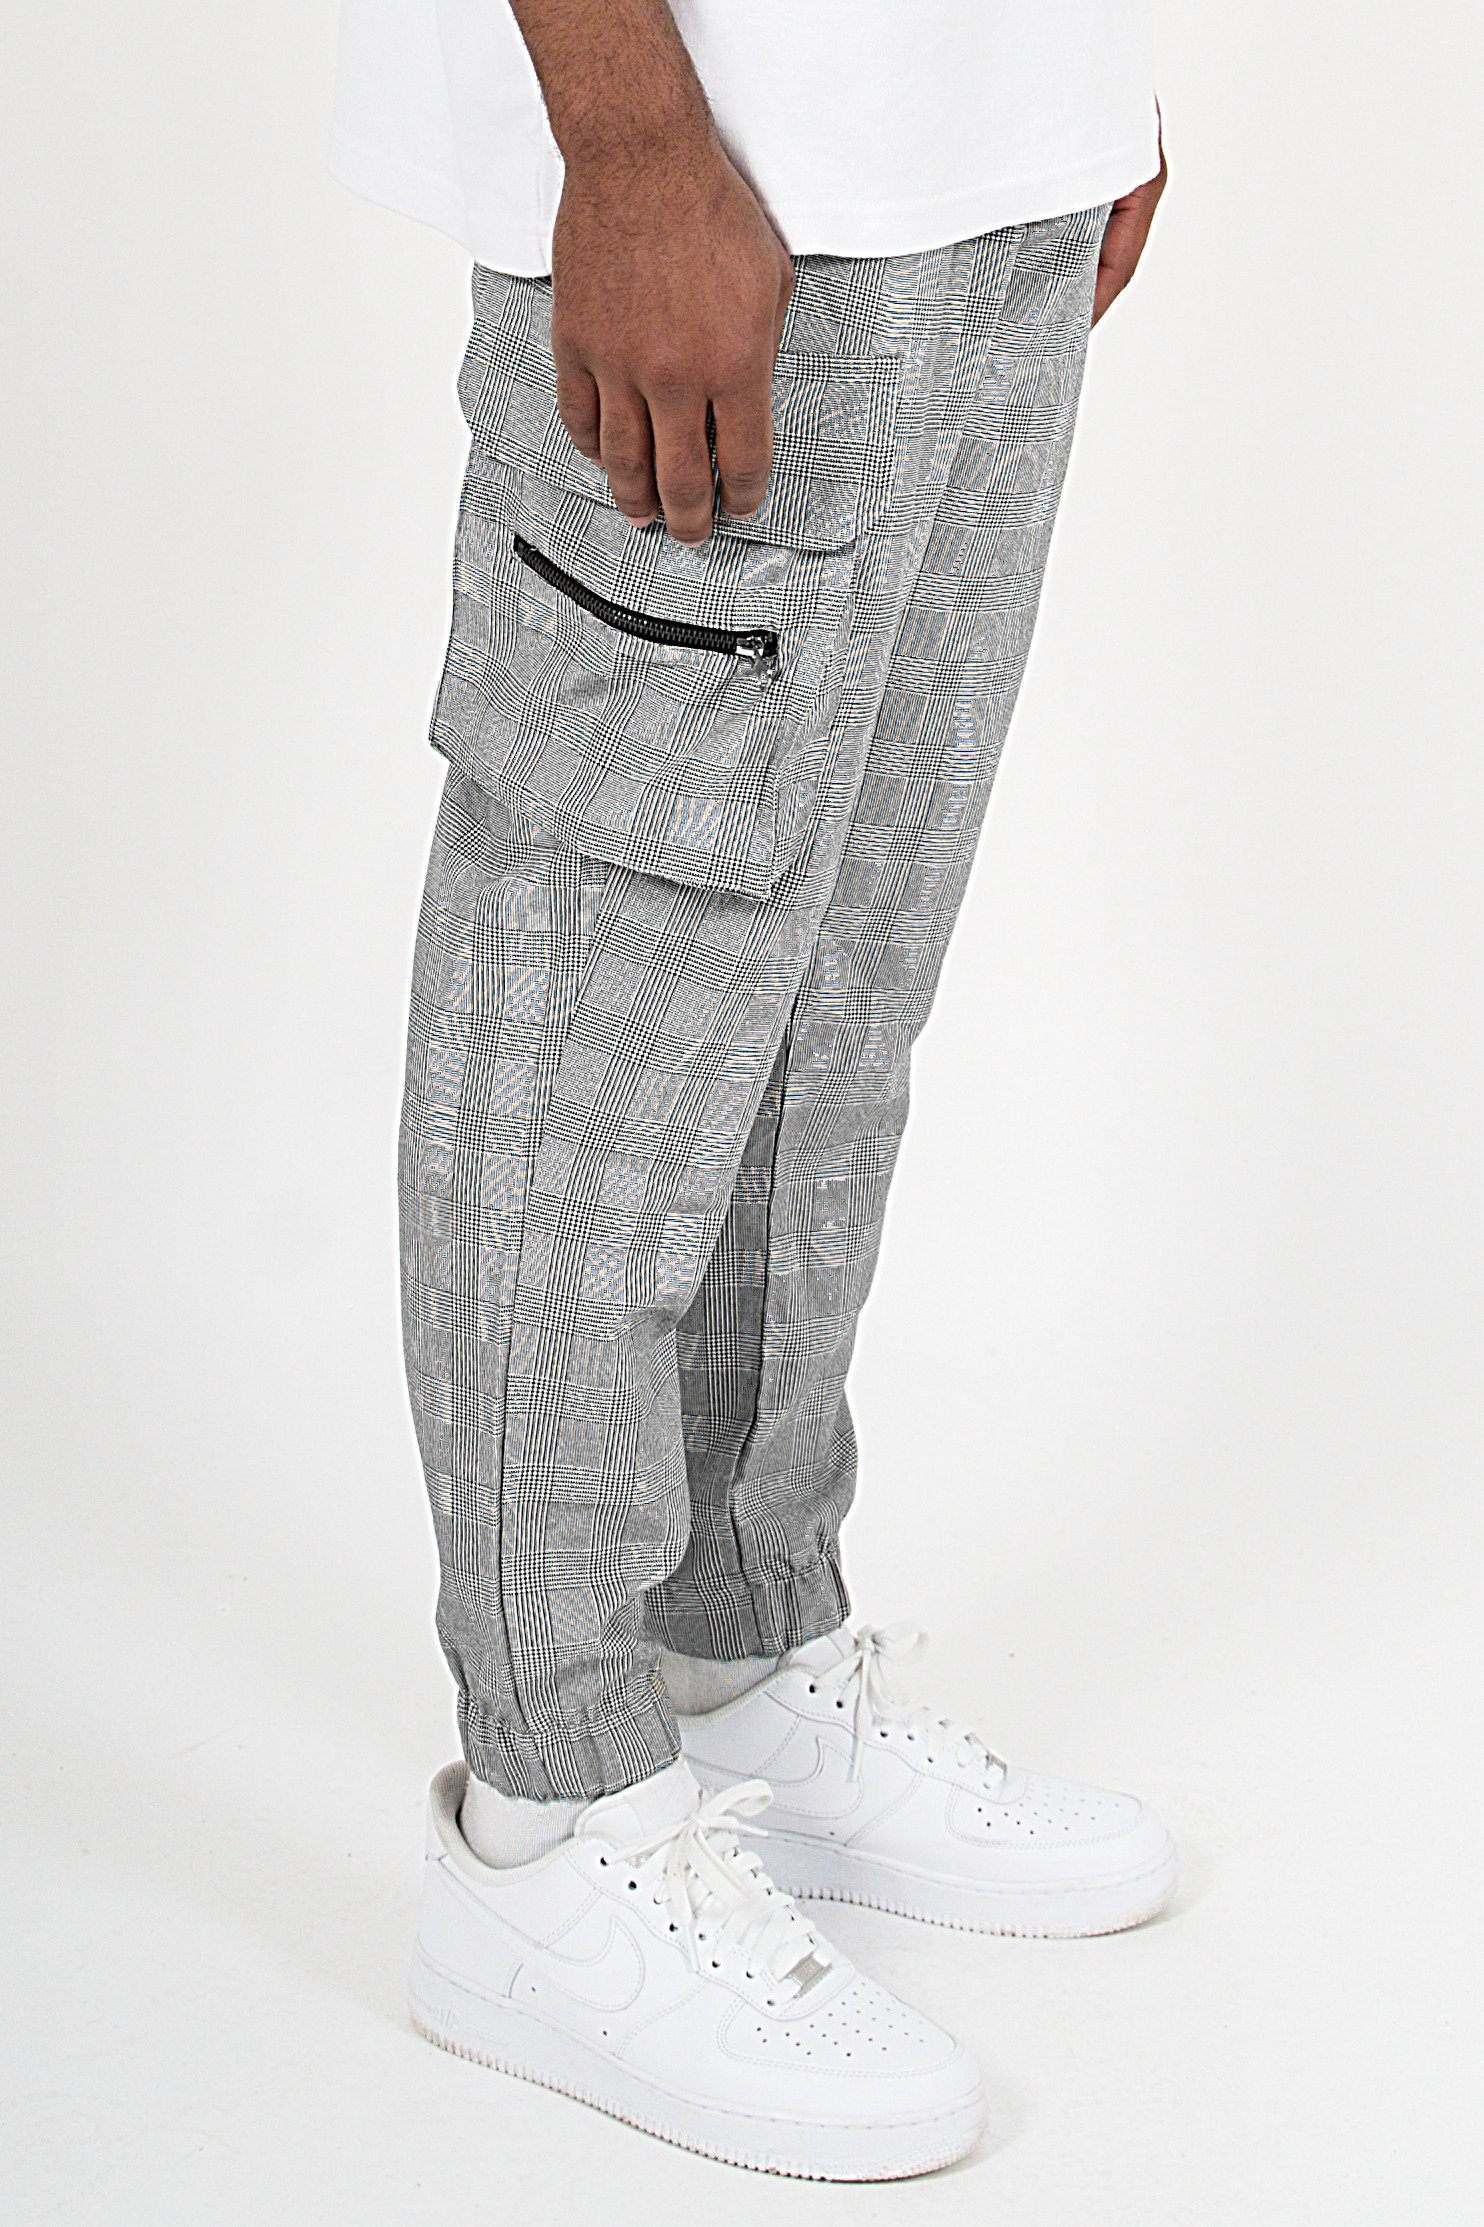 Gastre Checkered Cargo Pants Black White PANTS PEGADOR